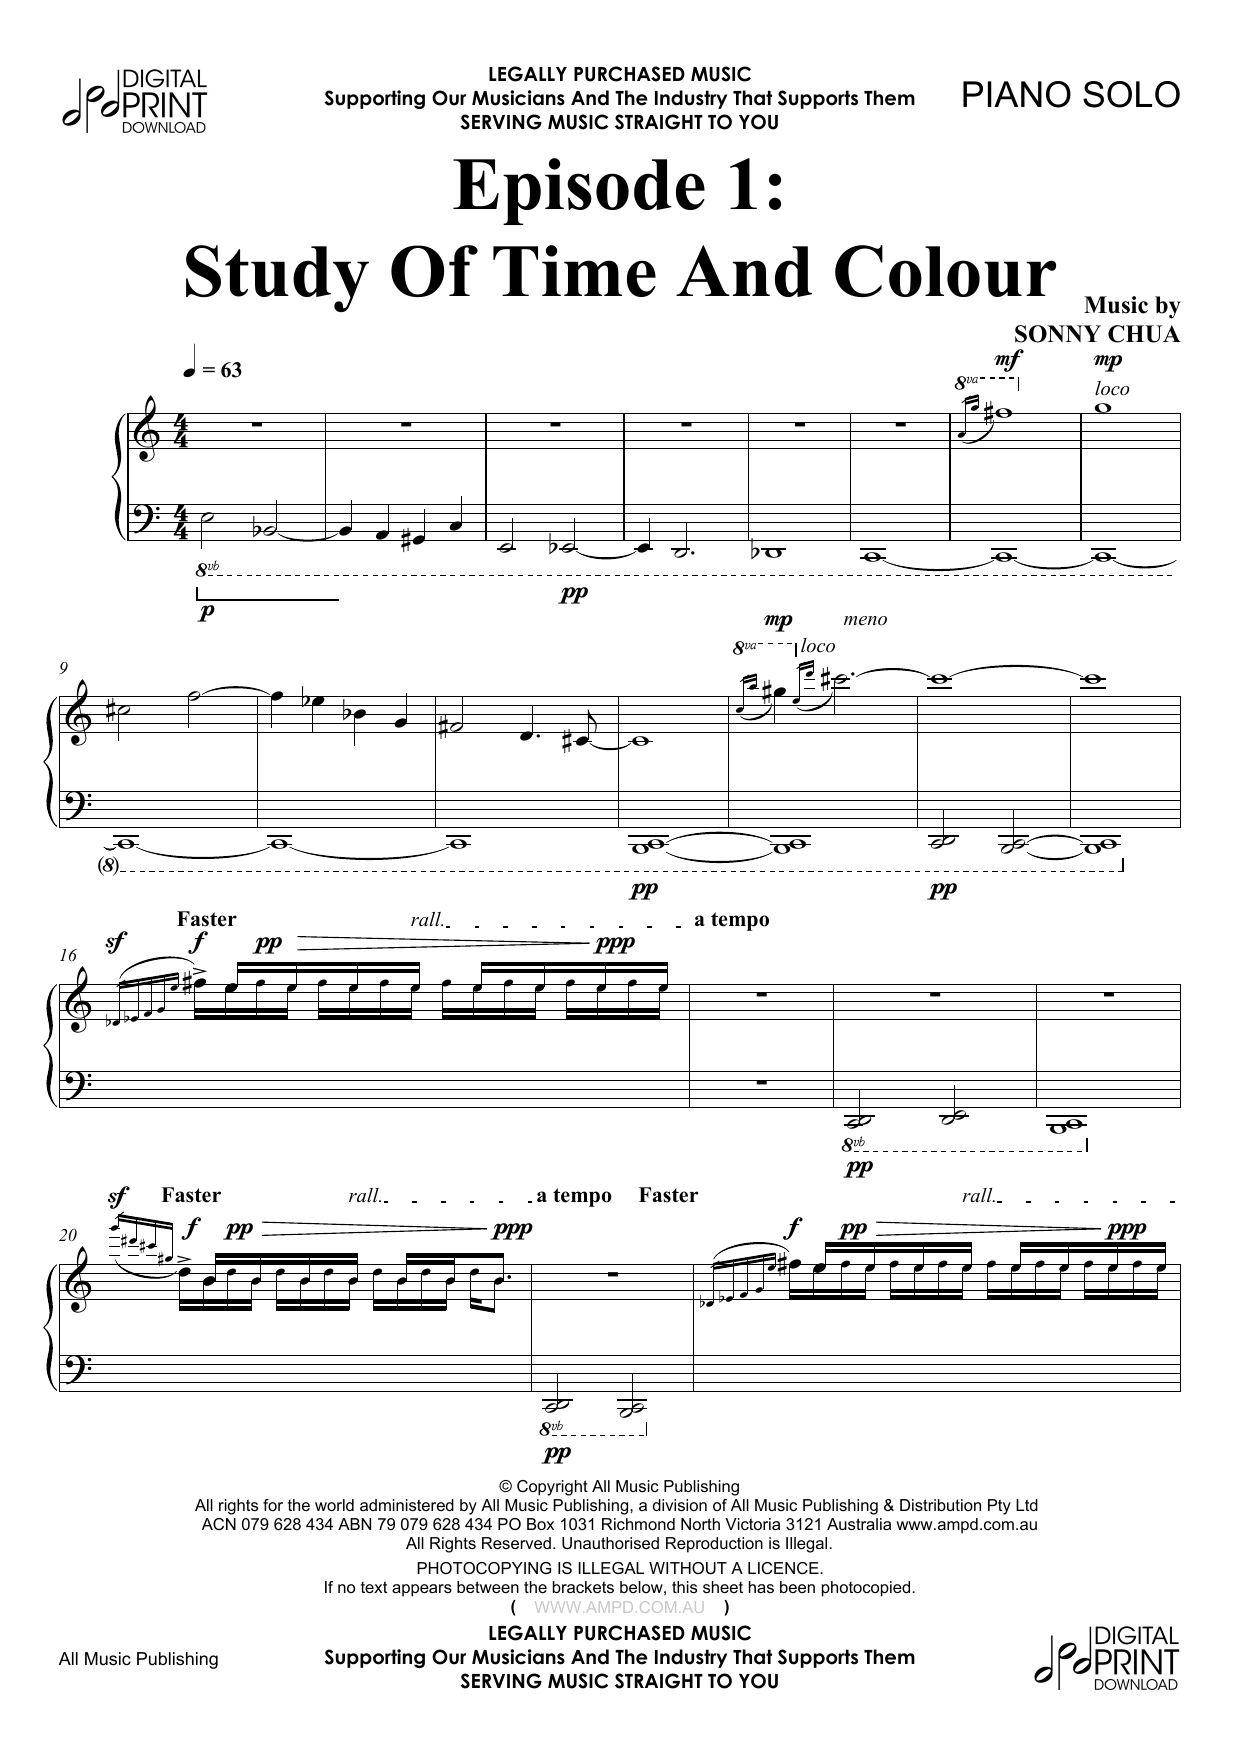 Episode 1 Study Of Time And Colour (Piano Solo)